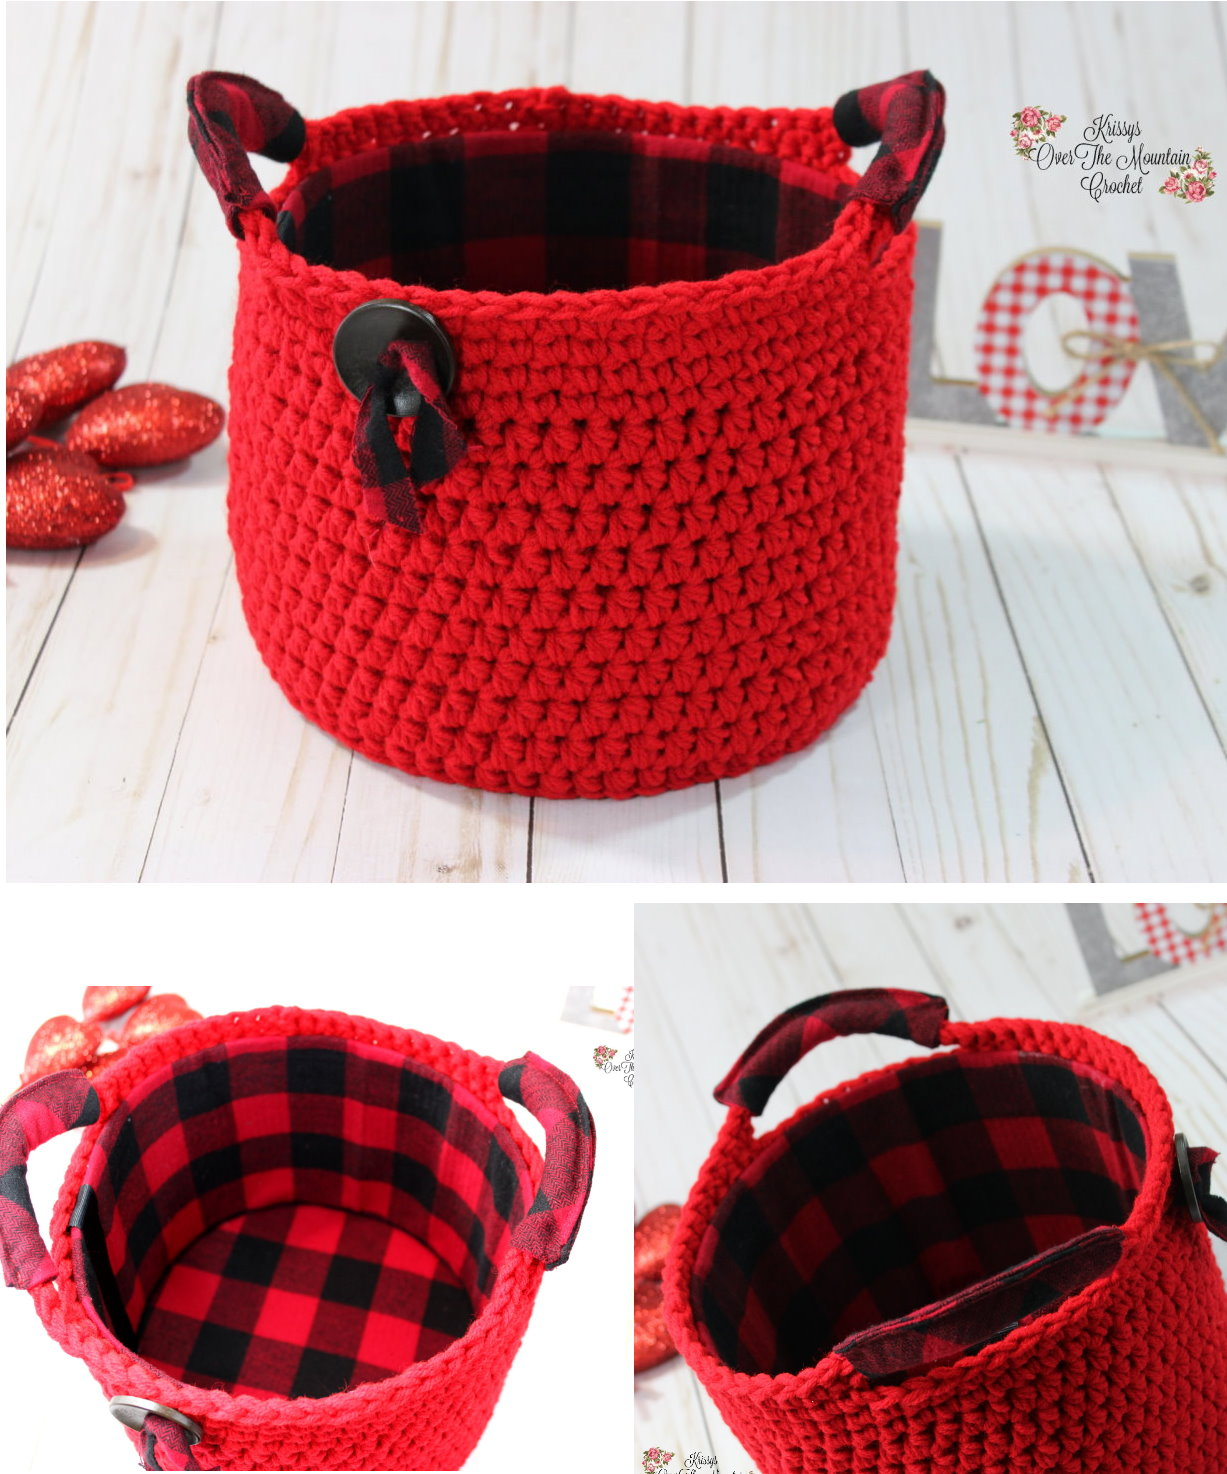 What a lovely storage basket with handles. It is so easy and fast to crochet. Of course you can add embellishments and add a lining.